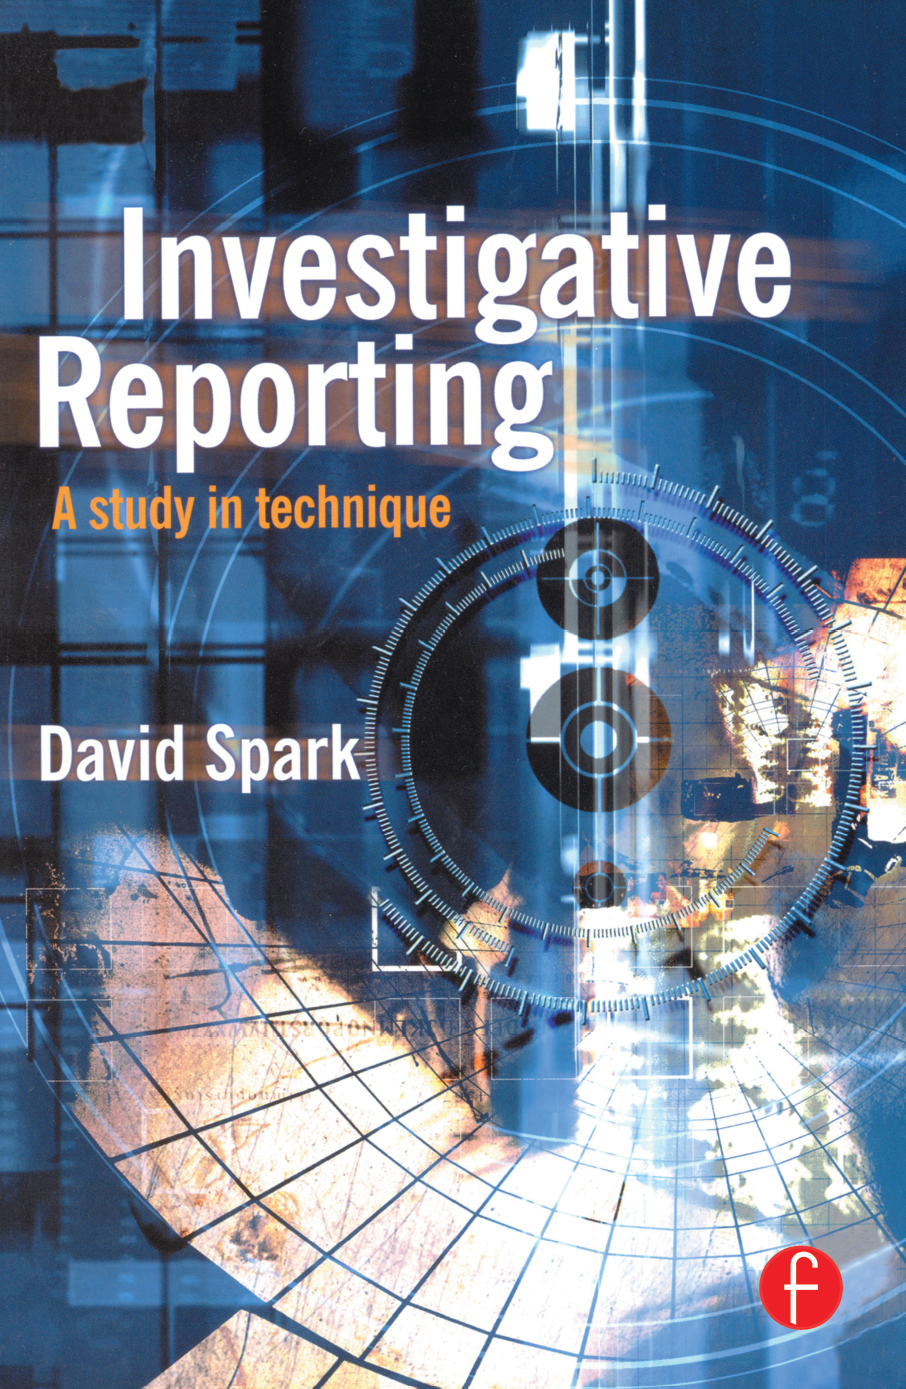 Investigative Reporting A study in technique